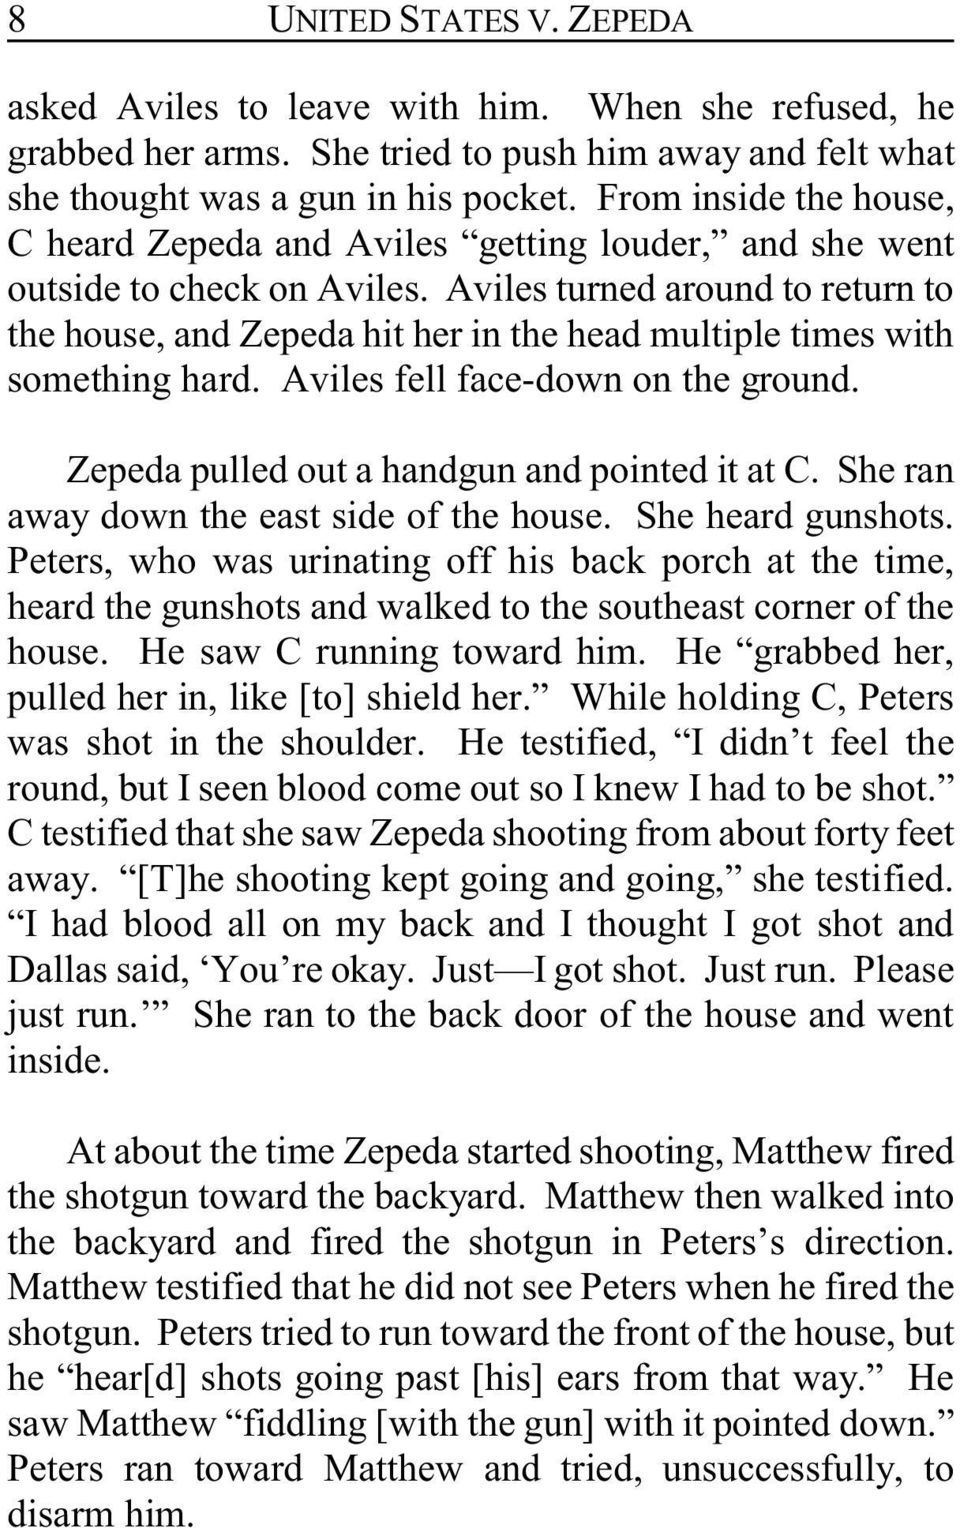 Aviles turned around to return to the house, and Zepeda hit her in the head multiple times with something hard. Aviles fell face-down on the ground. Zepeda pulled out a handgun and pointed it at C.